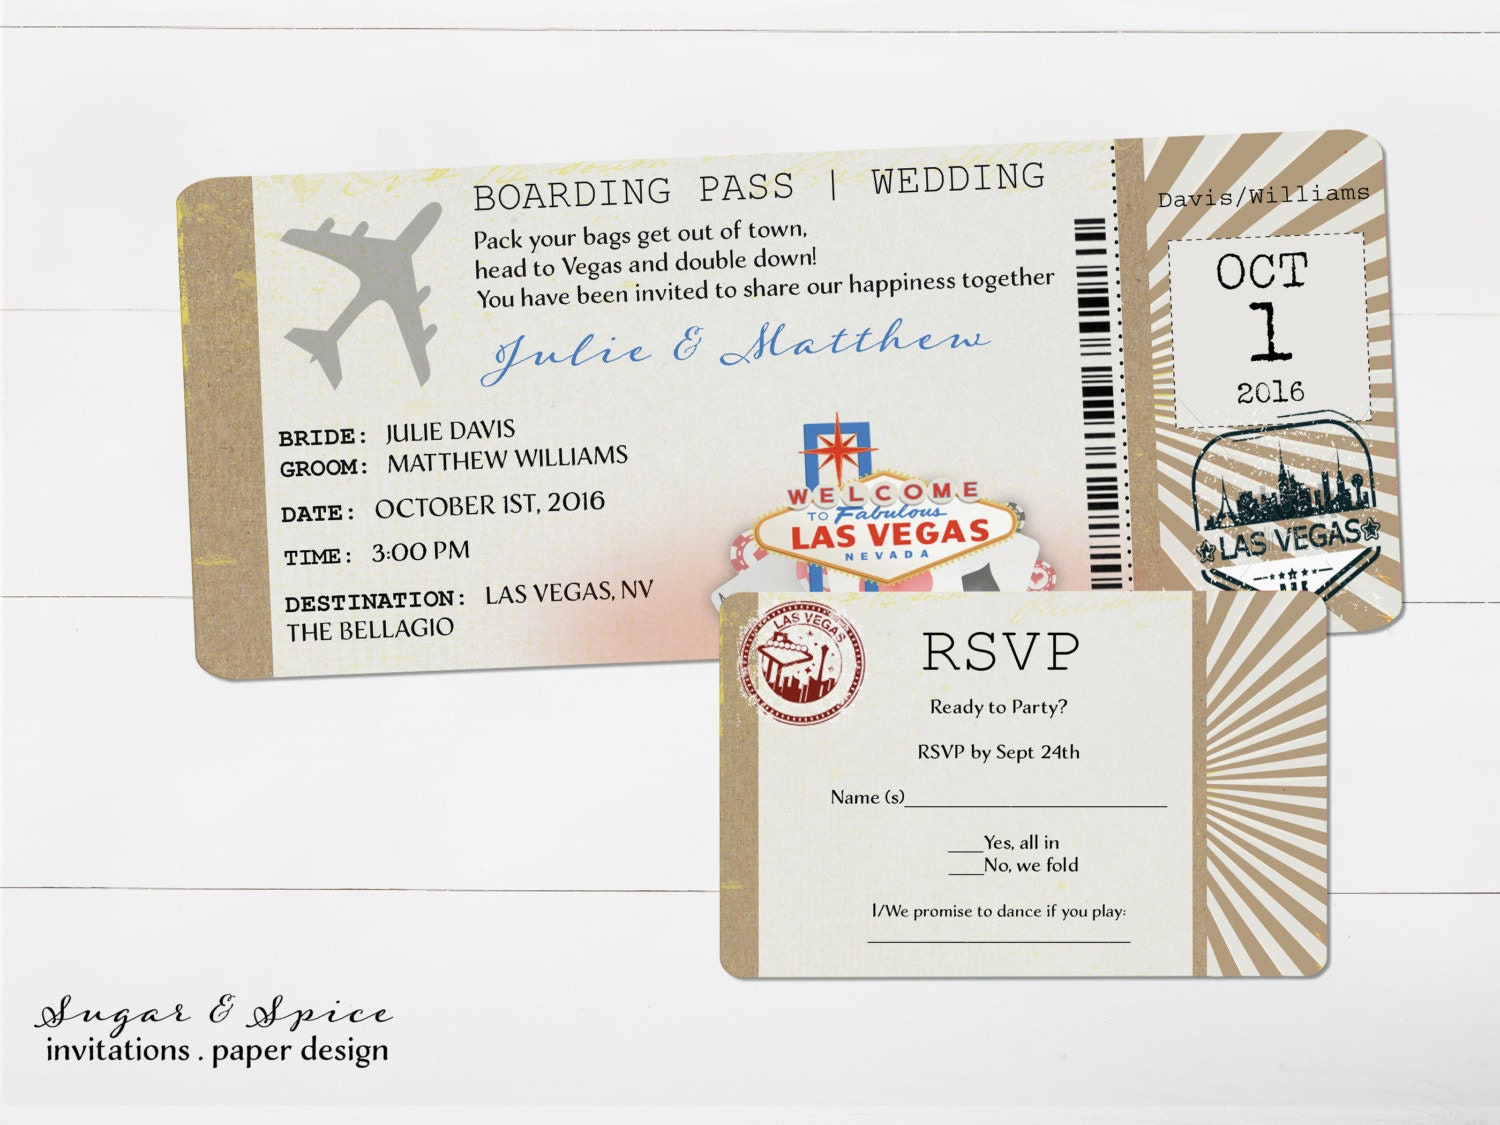 Las Vegas Wedding Invitation Wording: Las Vegas Wedding Invitation Destination By